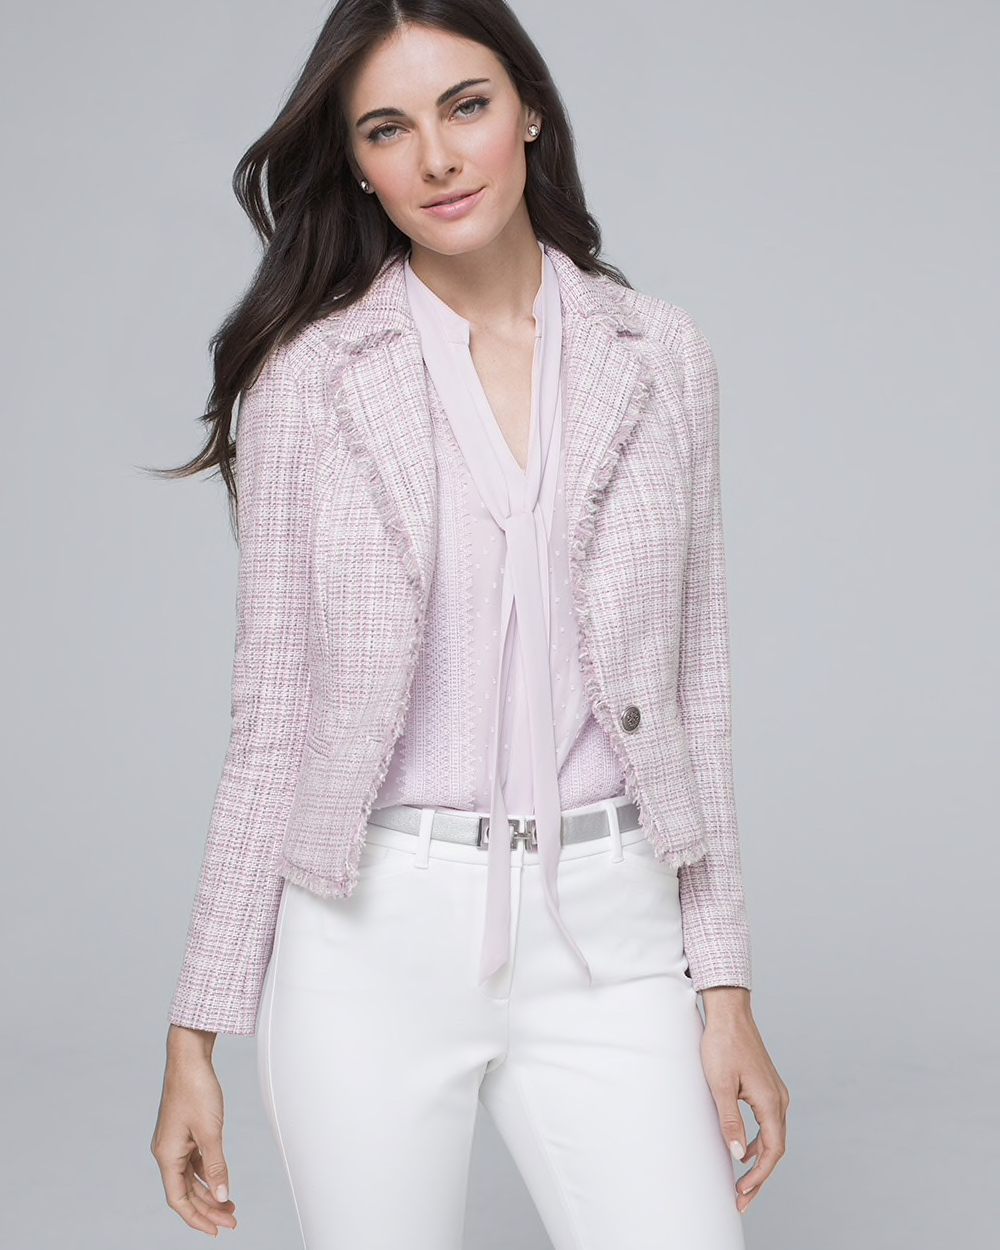 Capsule Wardrobe Jackets Tweed Jacket